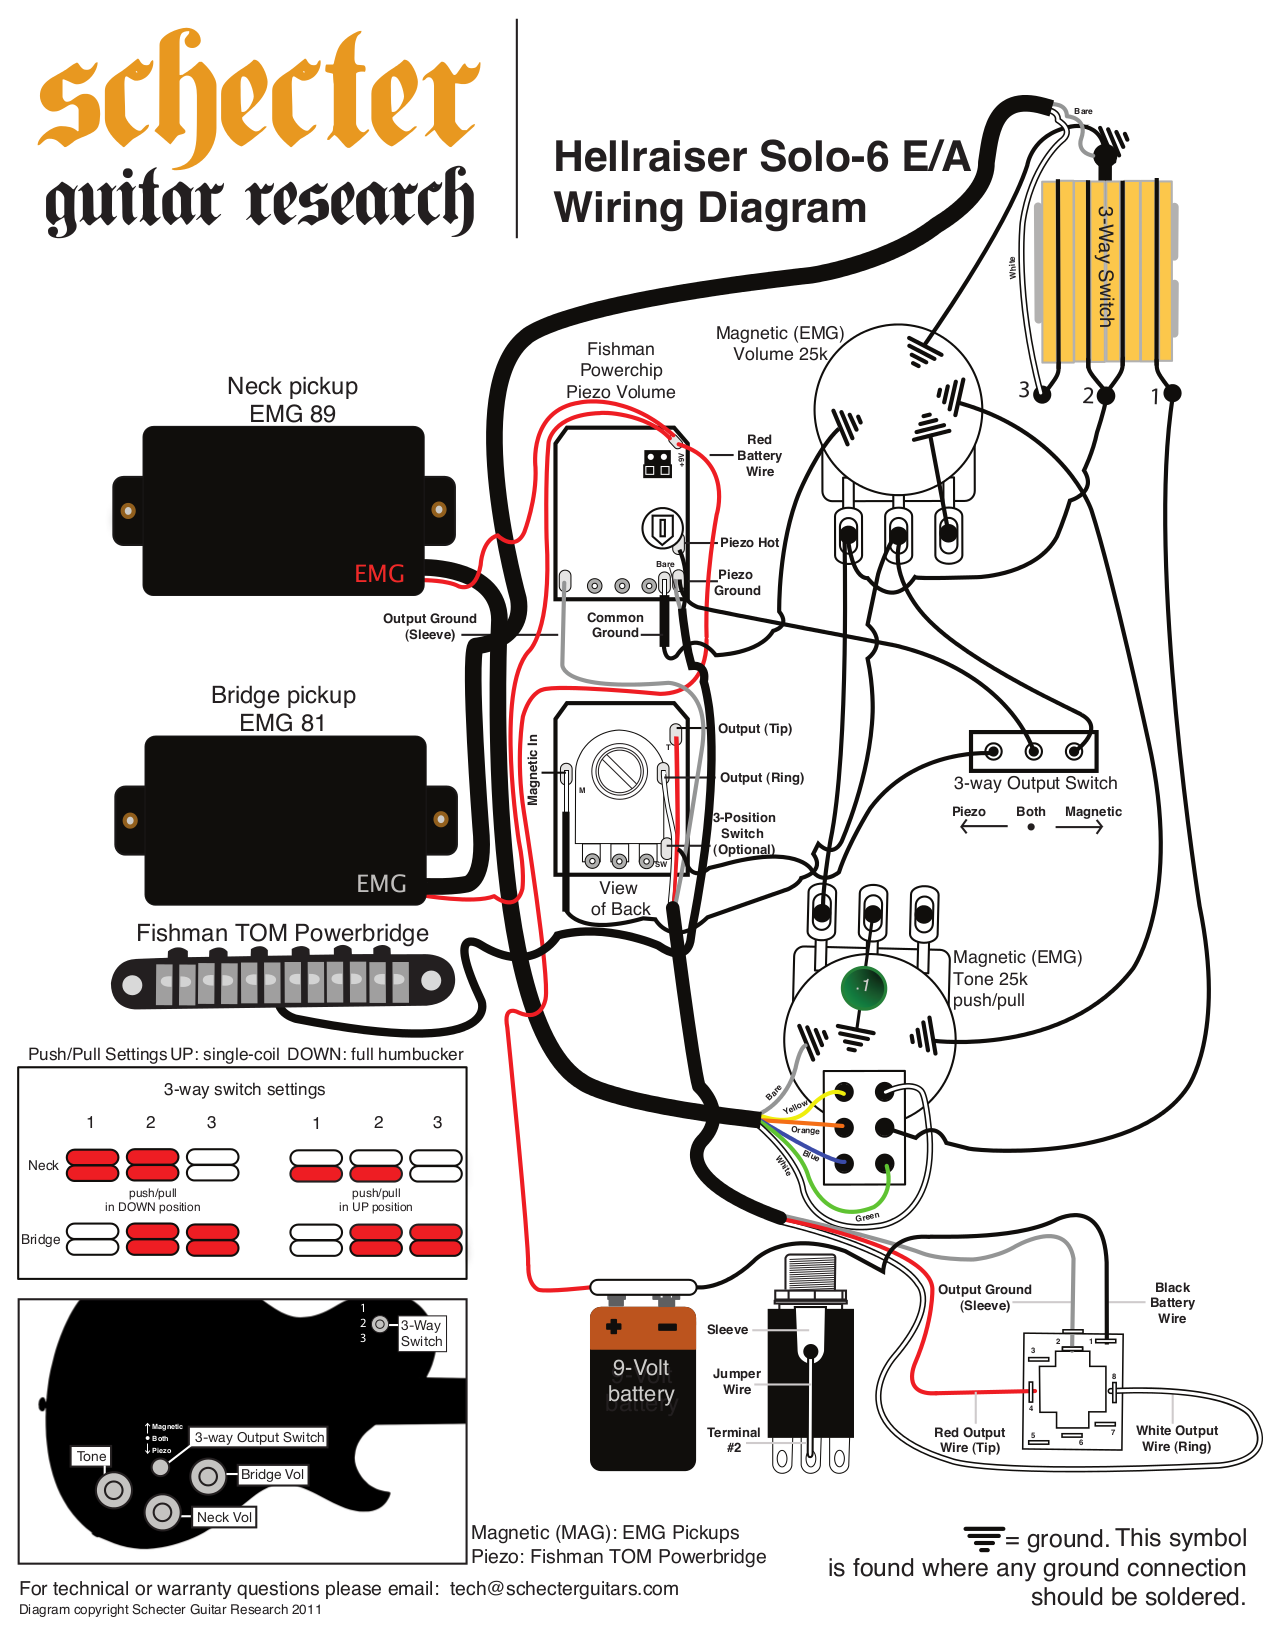 Pdf Manual For Schecter Guitar Hellraiser Solo 6